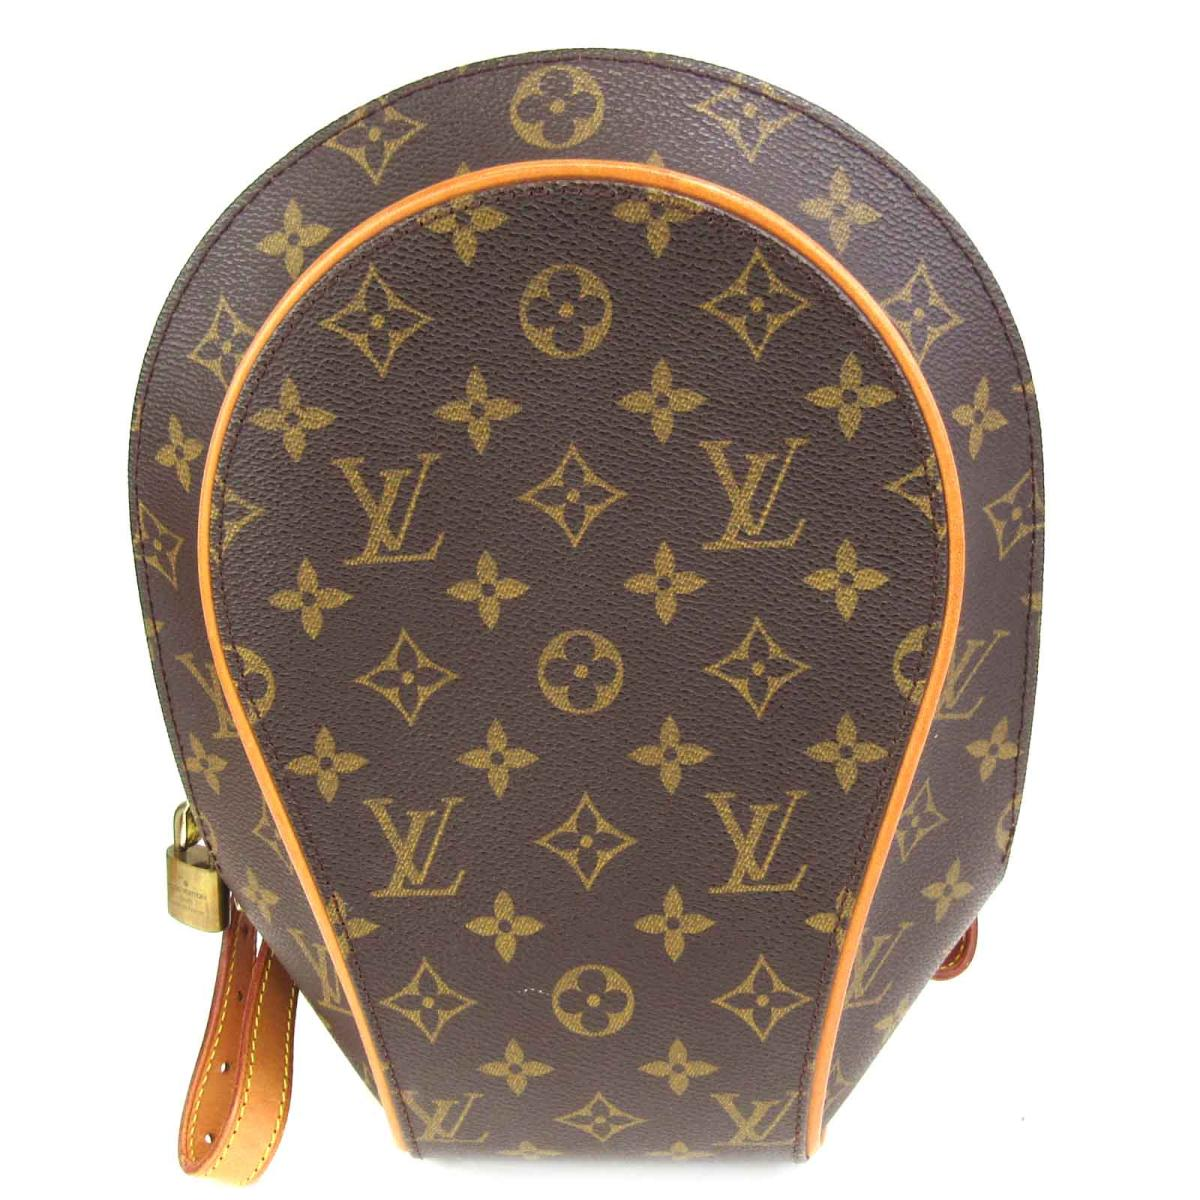 e45da0c5dd51 Louis Vuitton ellipse case ad rucksack backpack bag lady monogram monogram ( M51125)